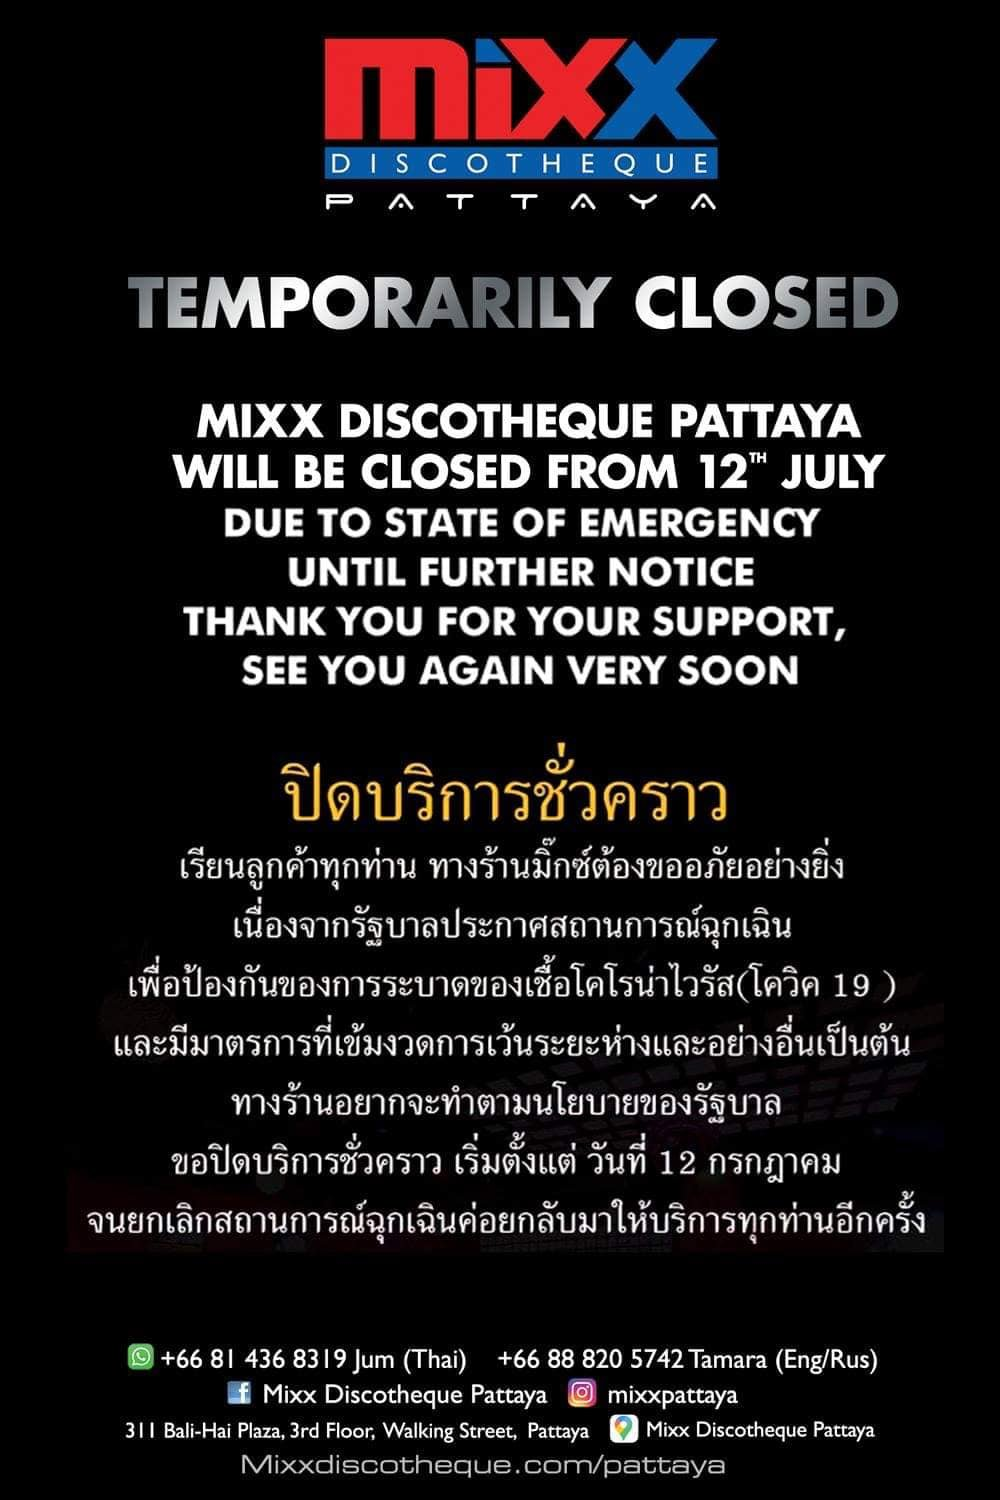 Mixx Disco closes down